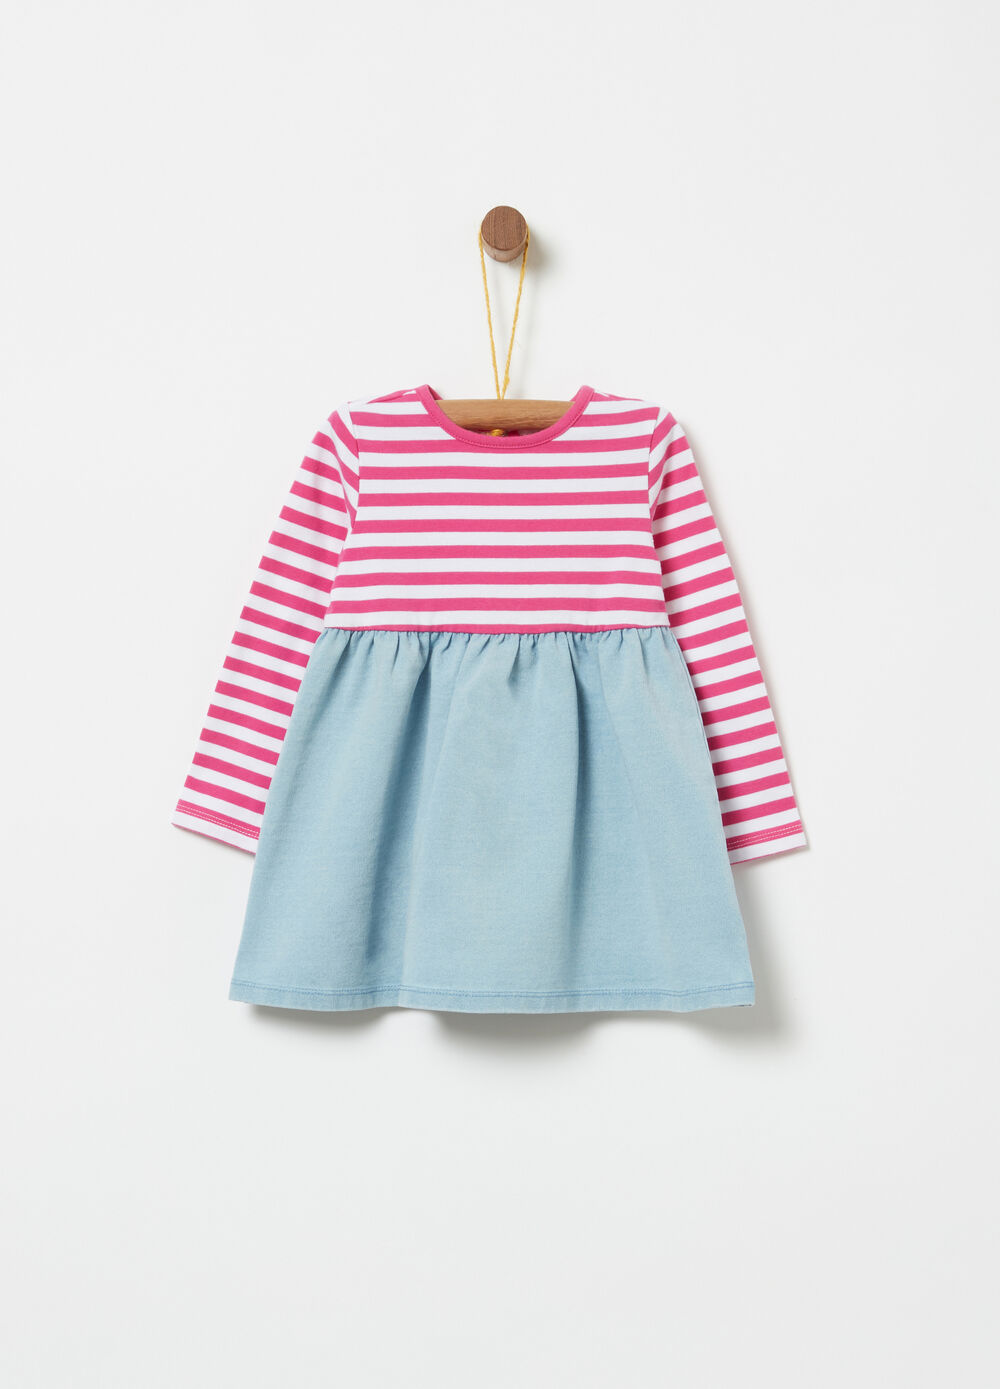 Dress with striped top and denim skirt